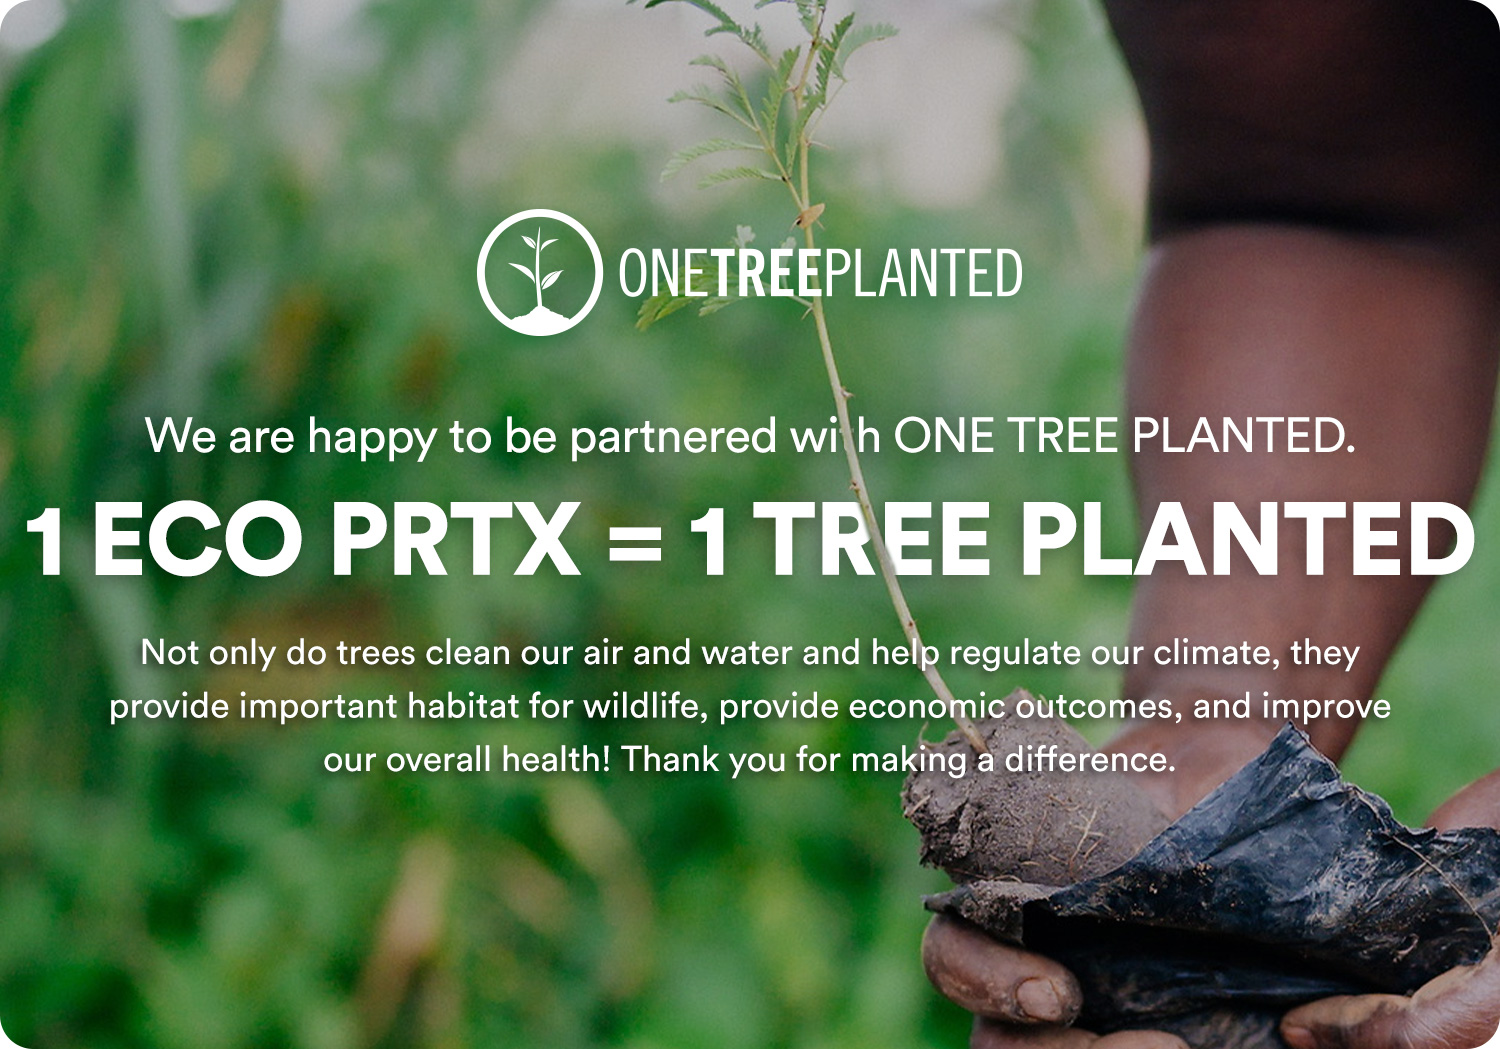 One ECO PRTX purchased = One Tree Planted